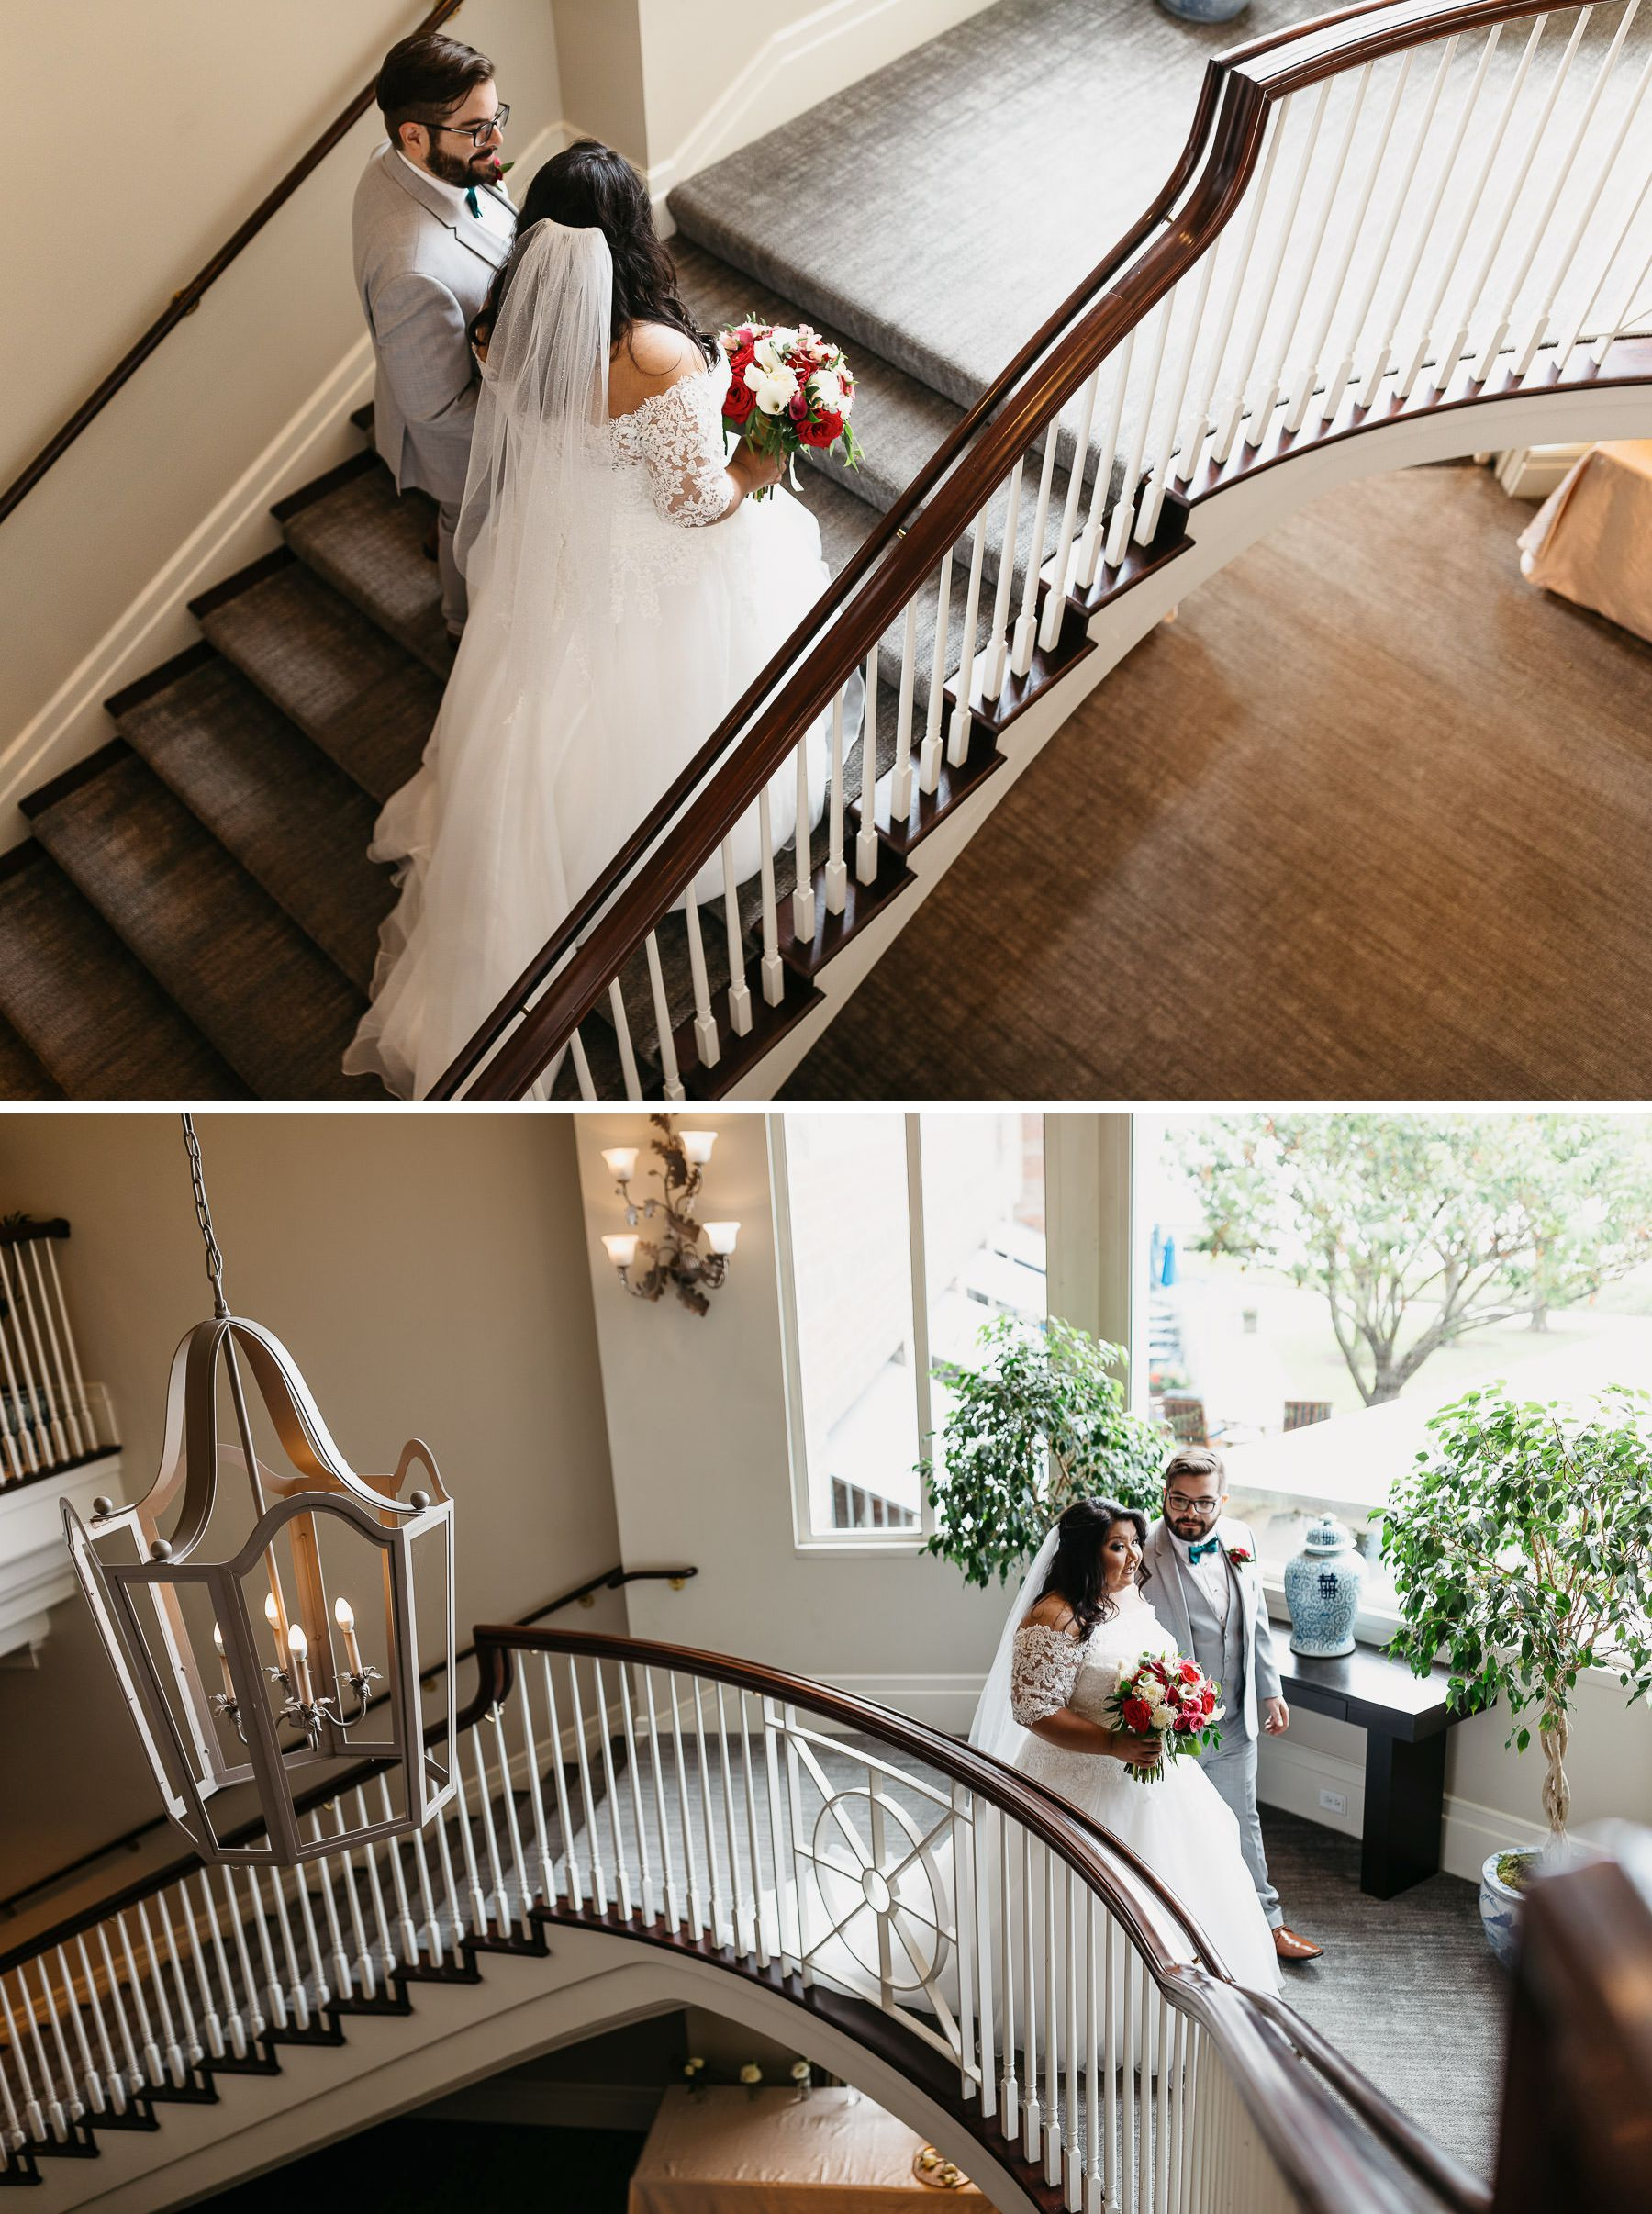 woodmark hotel wedding stairs